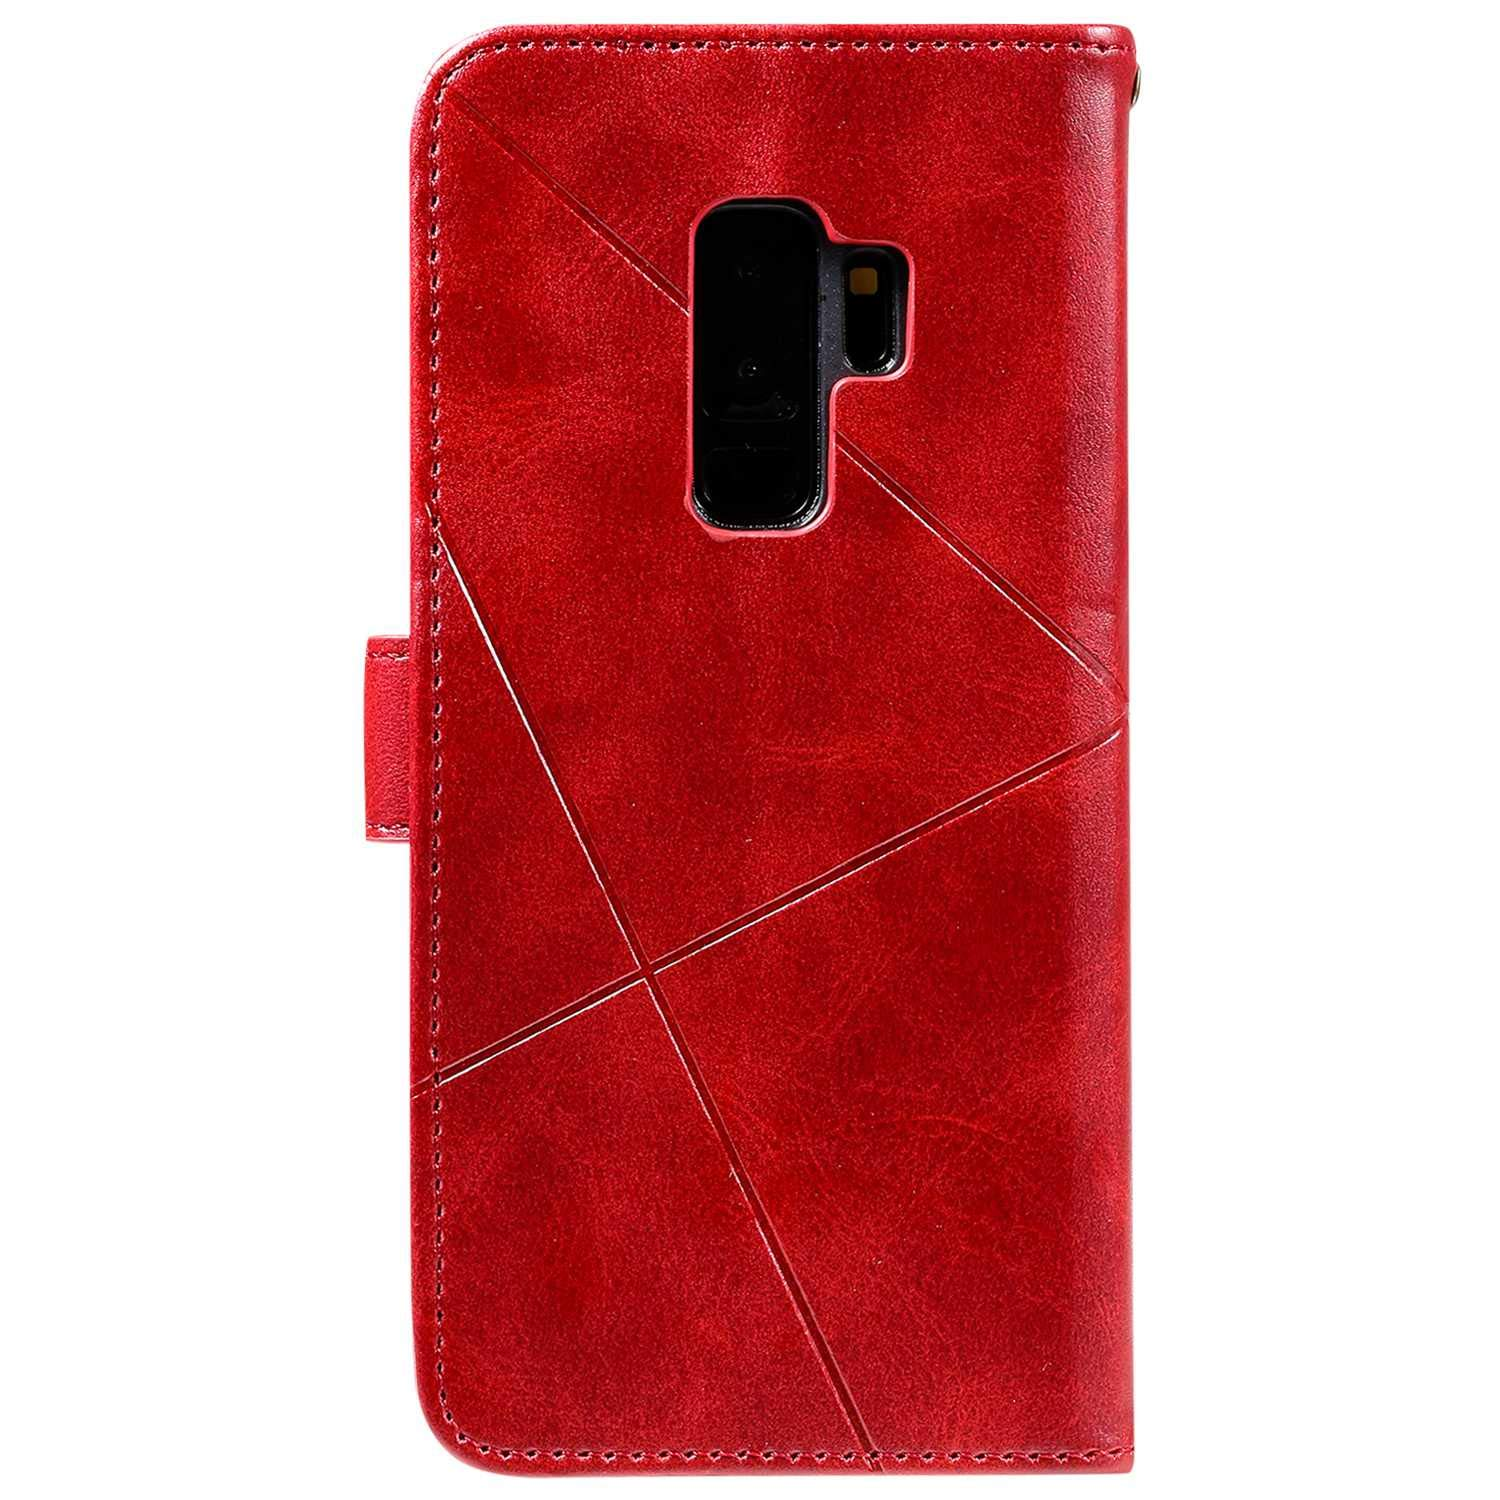 Multifunctions Book Style Case with Soft TPU Bumper Case Galaxy S9 Plus Case Red The Grafu Shockproof PU Leather Wallet Cover for Samsung Galaxy S9 Plus